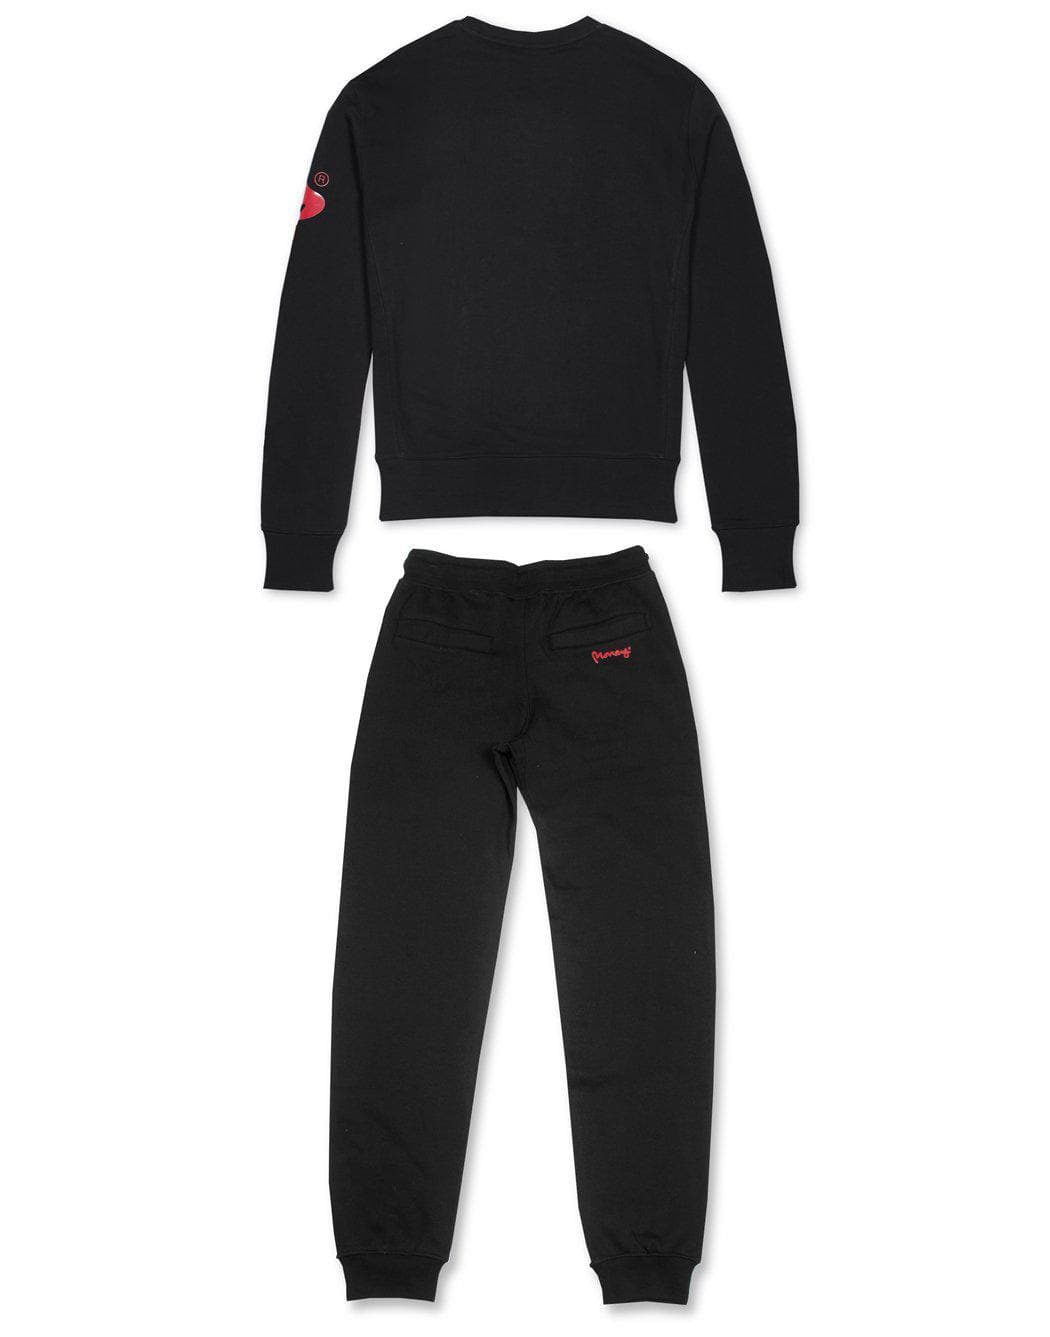 money clothing signature money logo black crew neck tracksuit